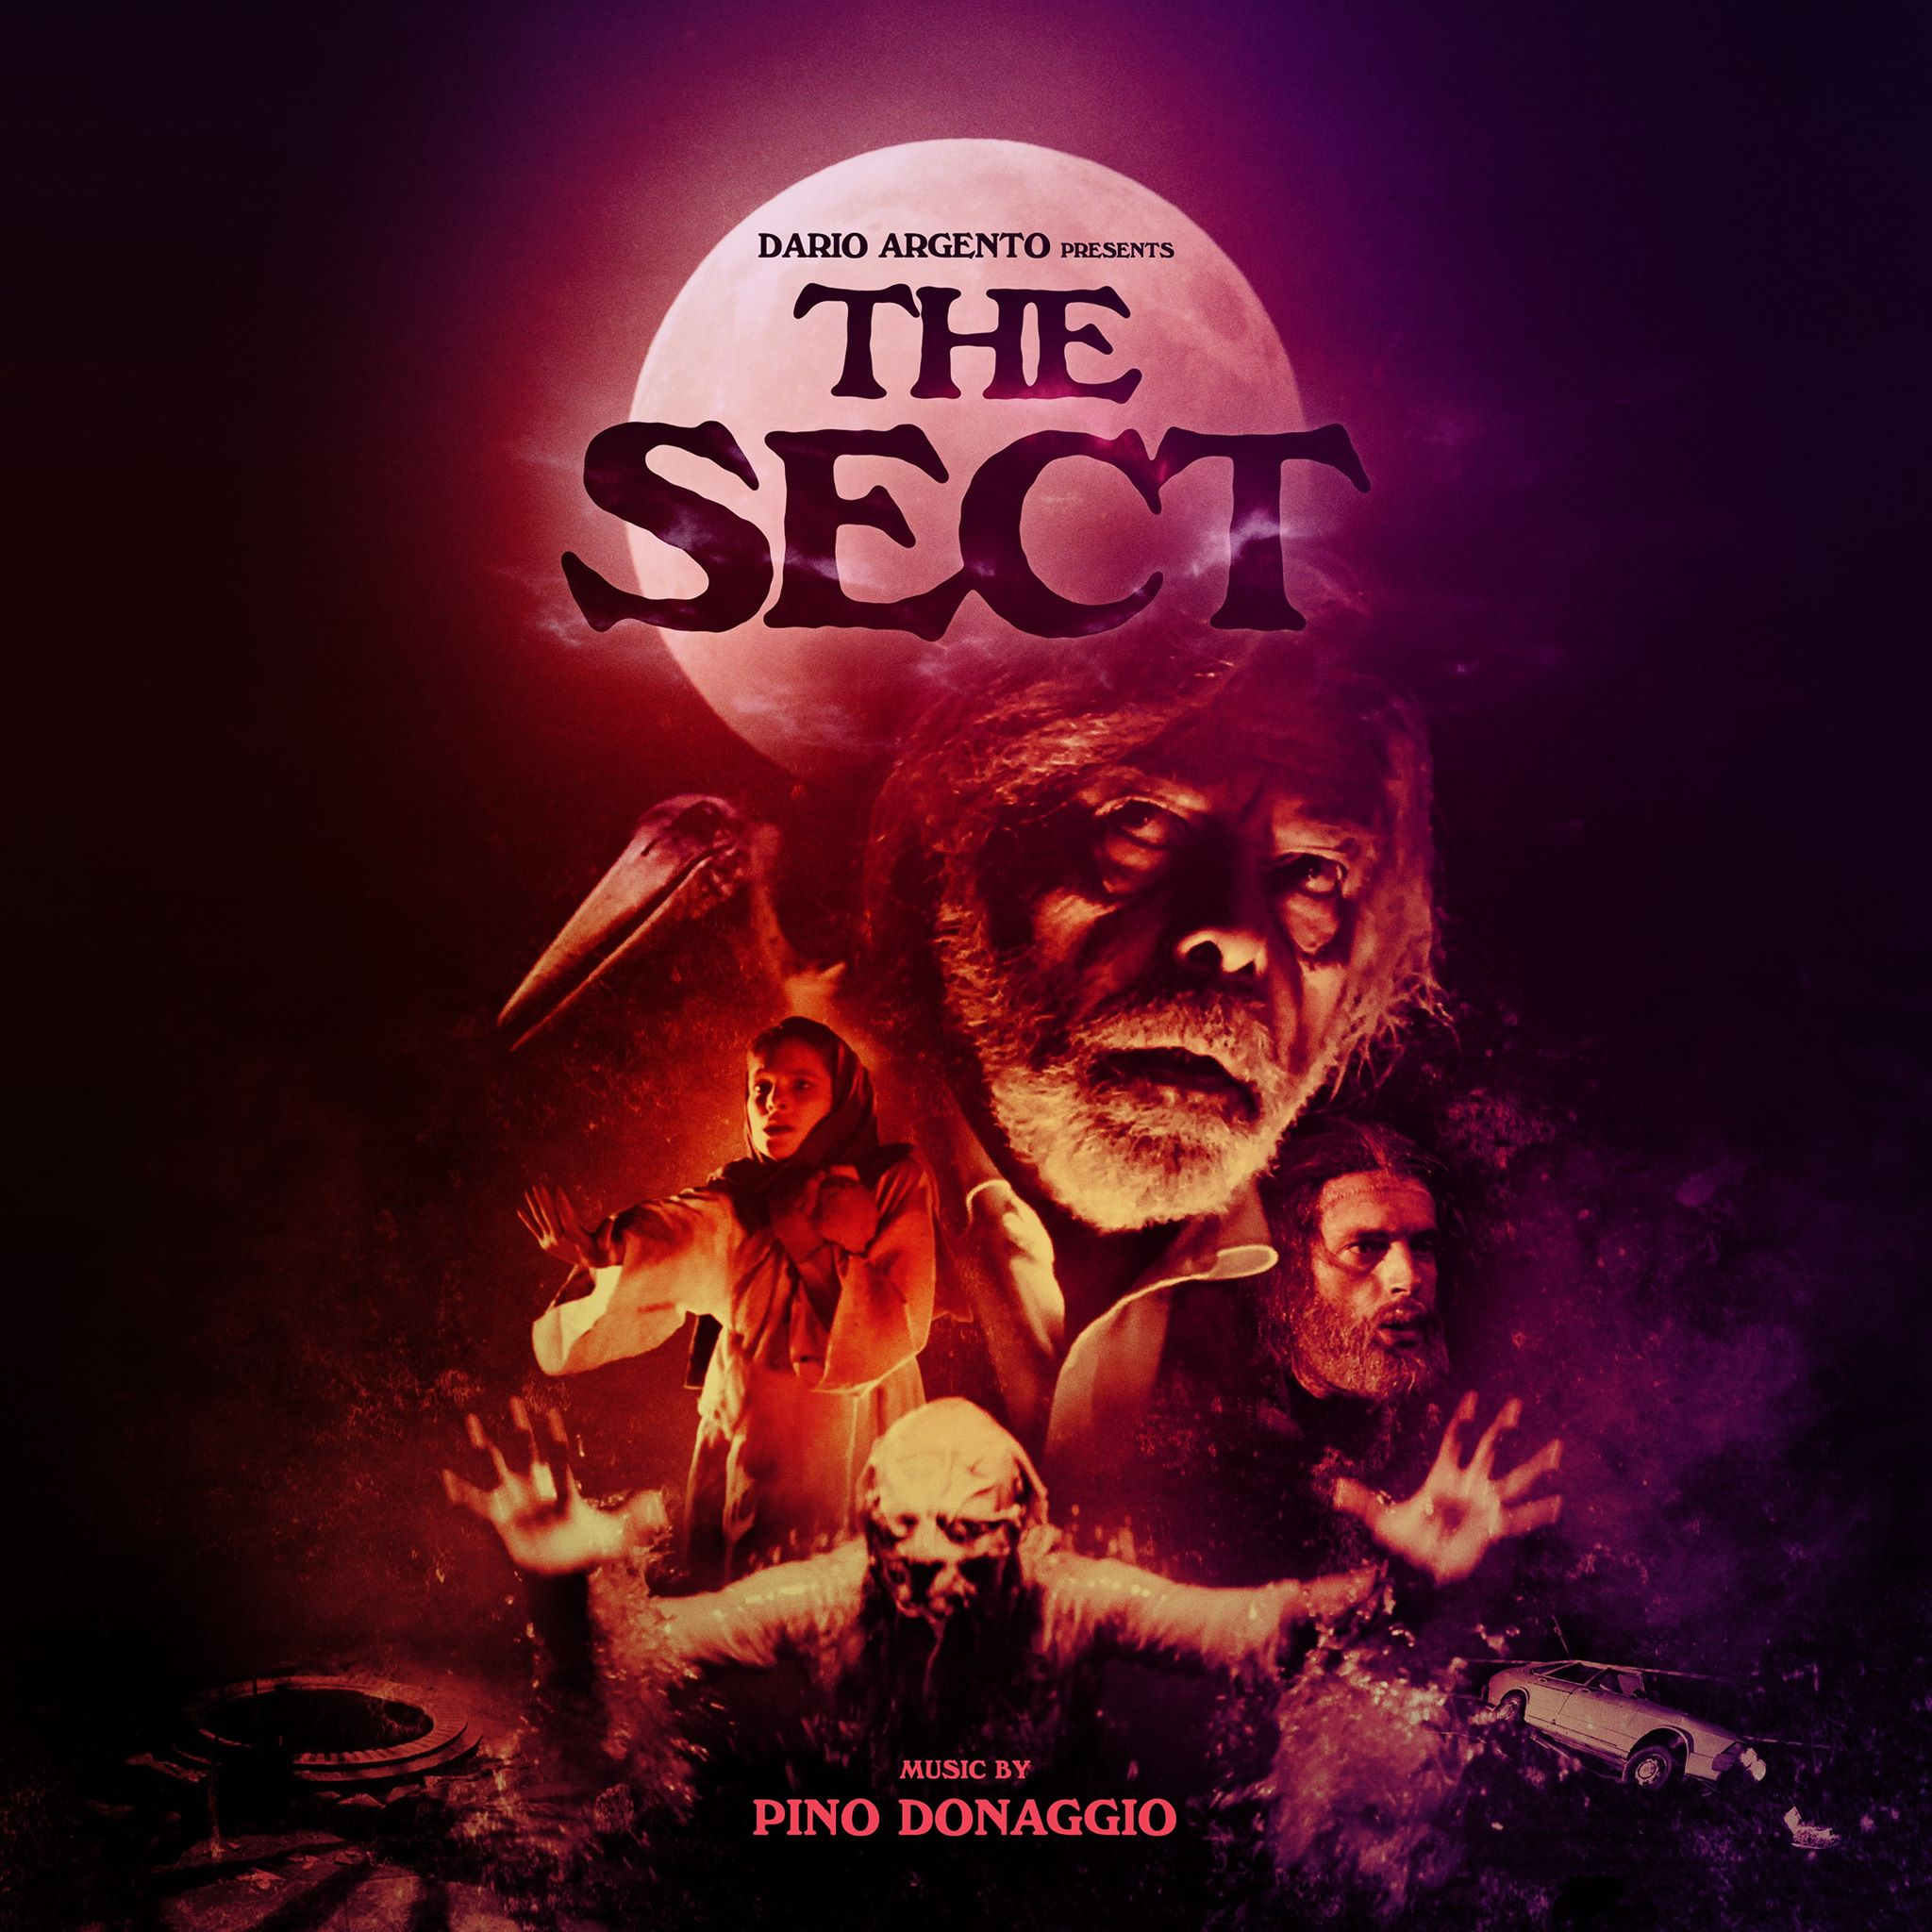 La Setta (The Sect) – Original Motion Picture Soundtrack LP